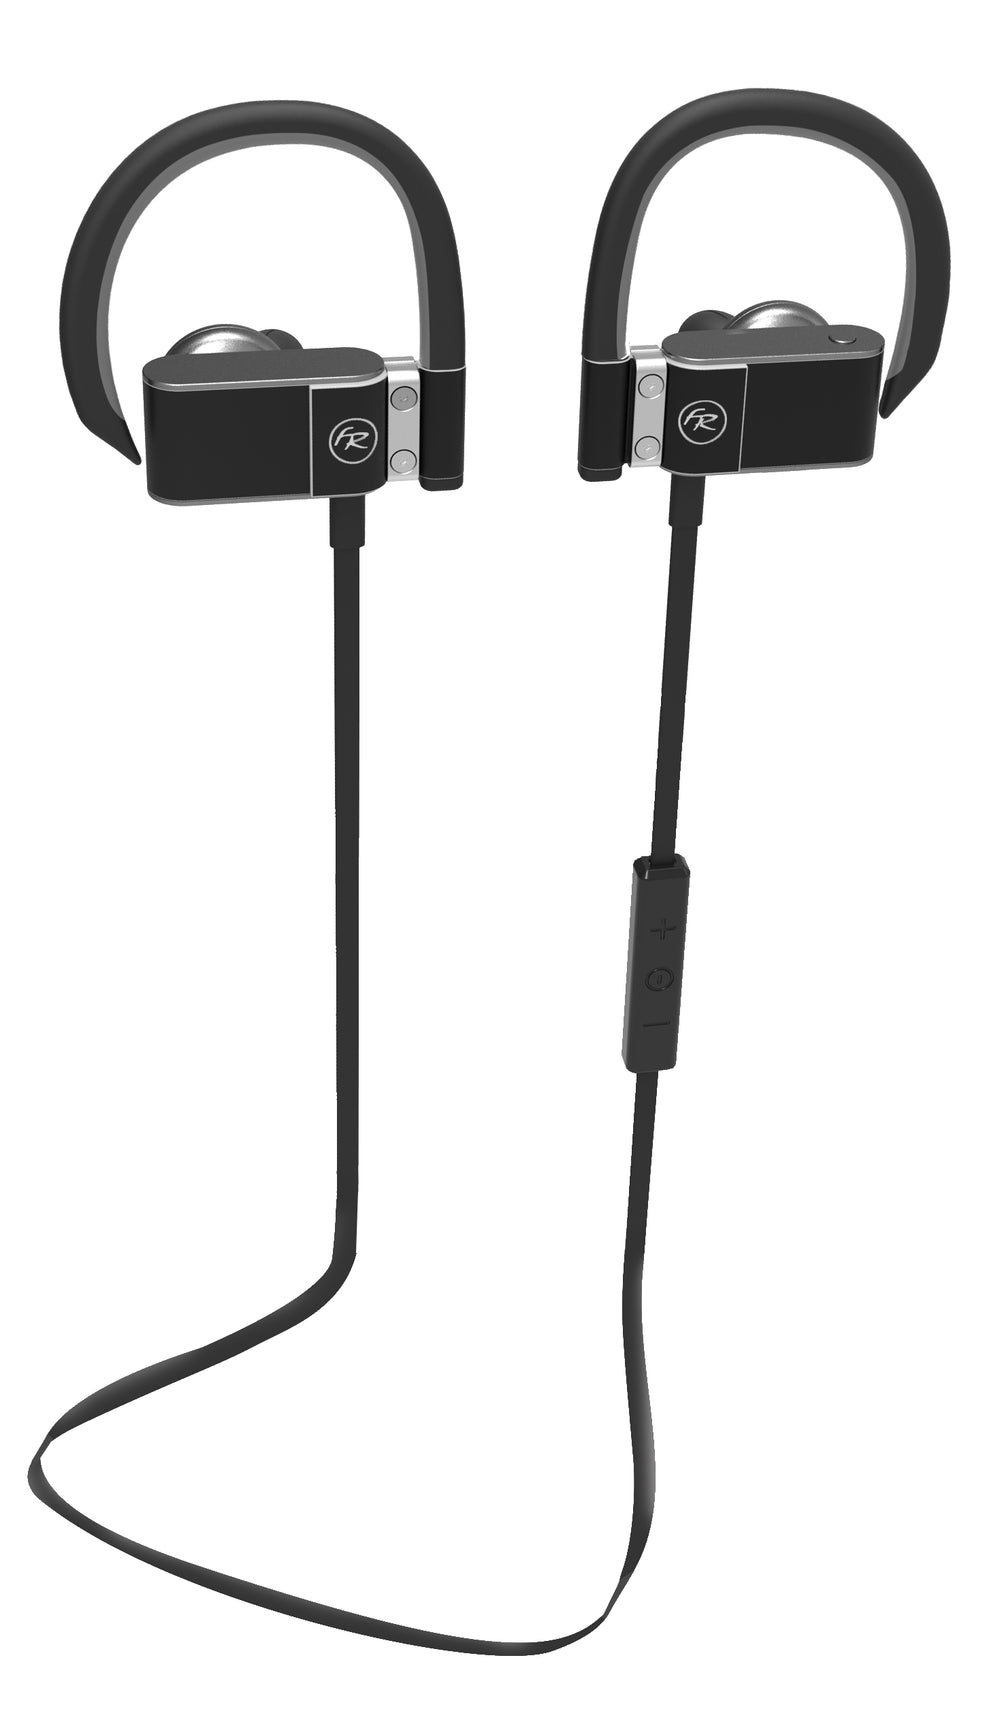 Floyd Rose Pro Series Wireless Sport Earbuds with In-Line Microphone